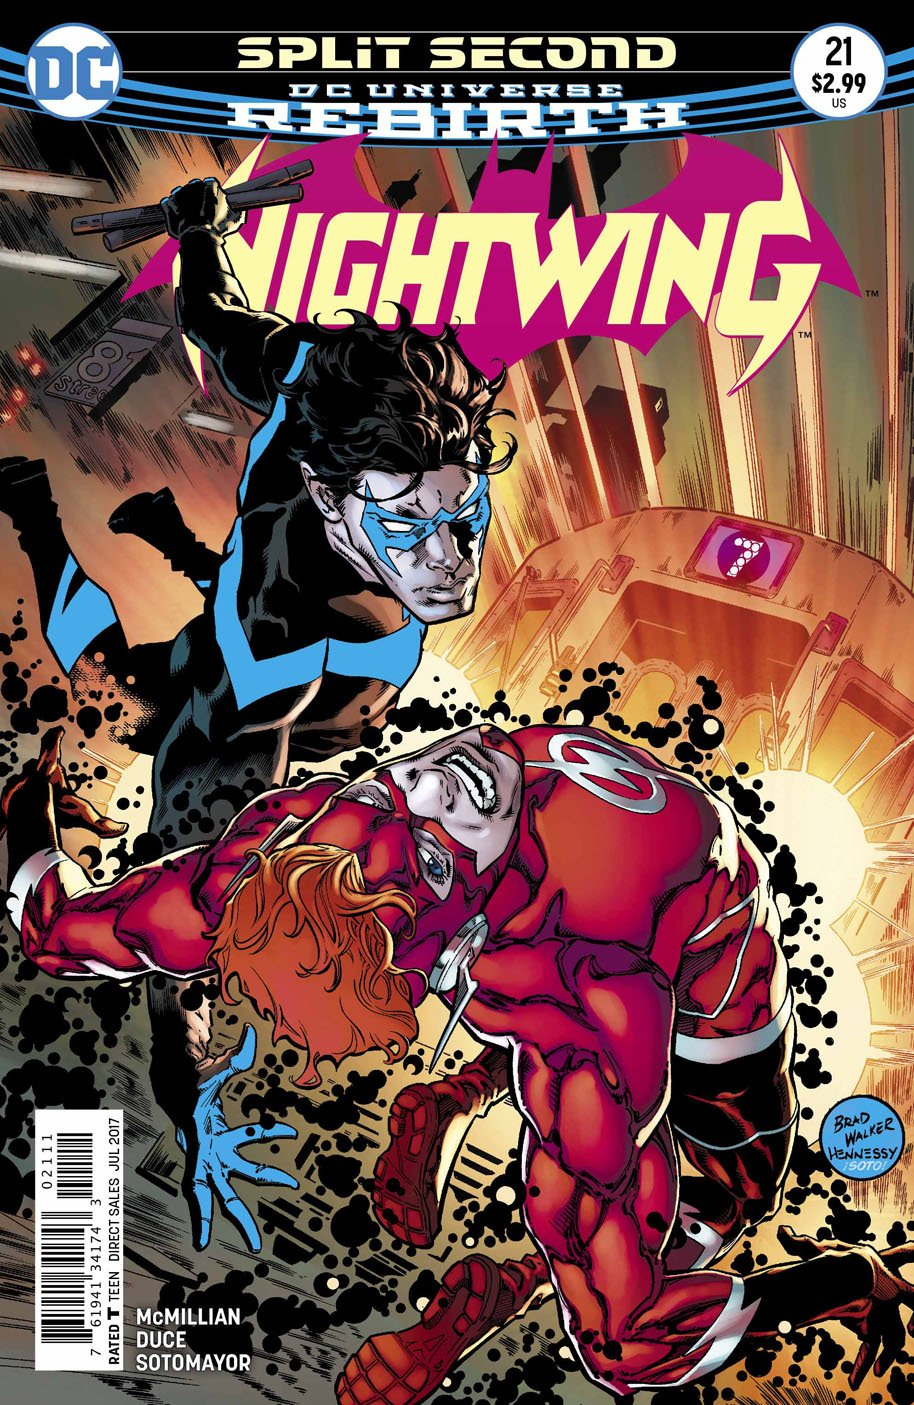 Nightwing 21 cover